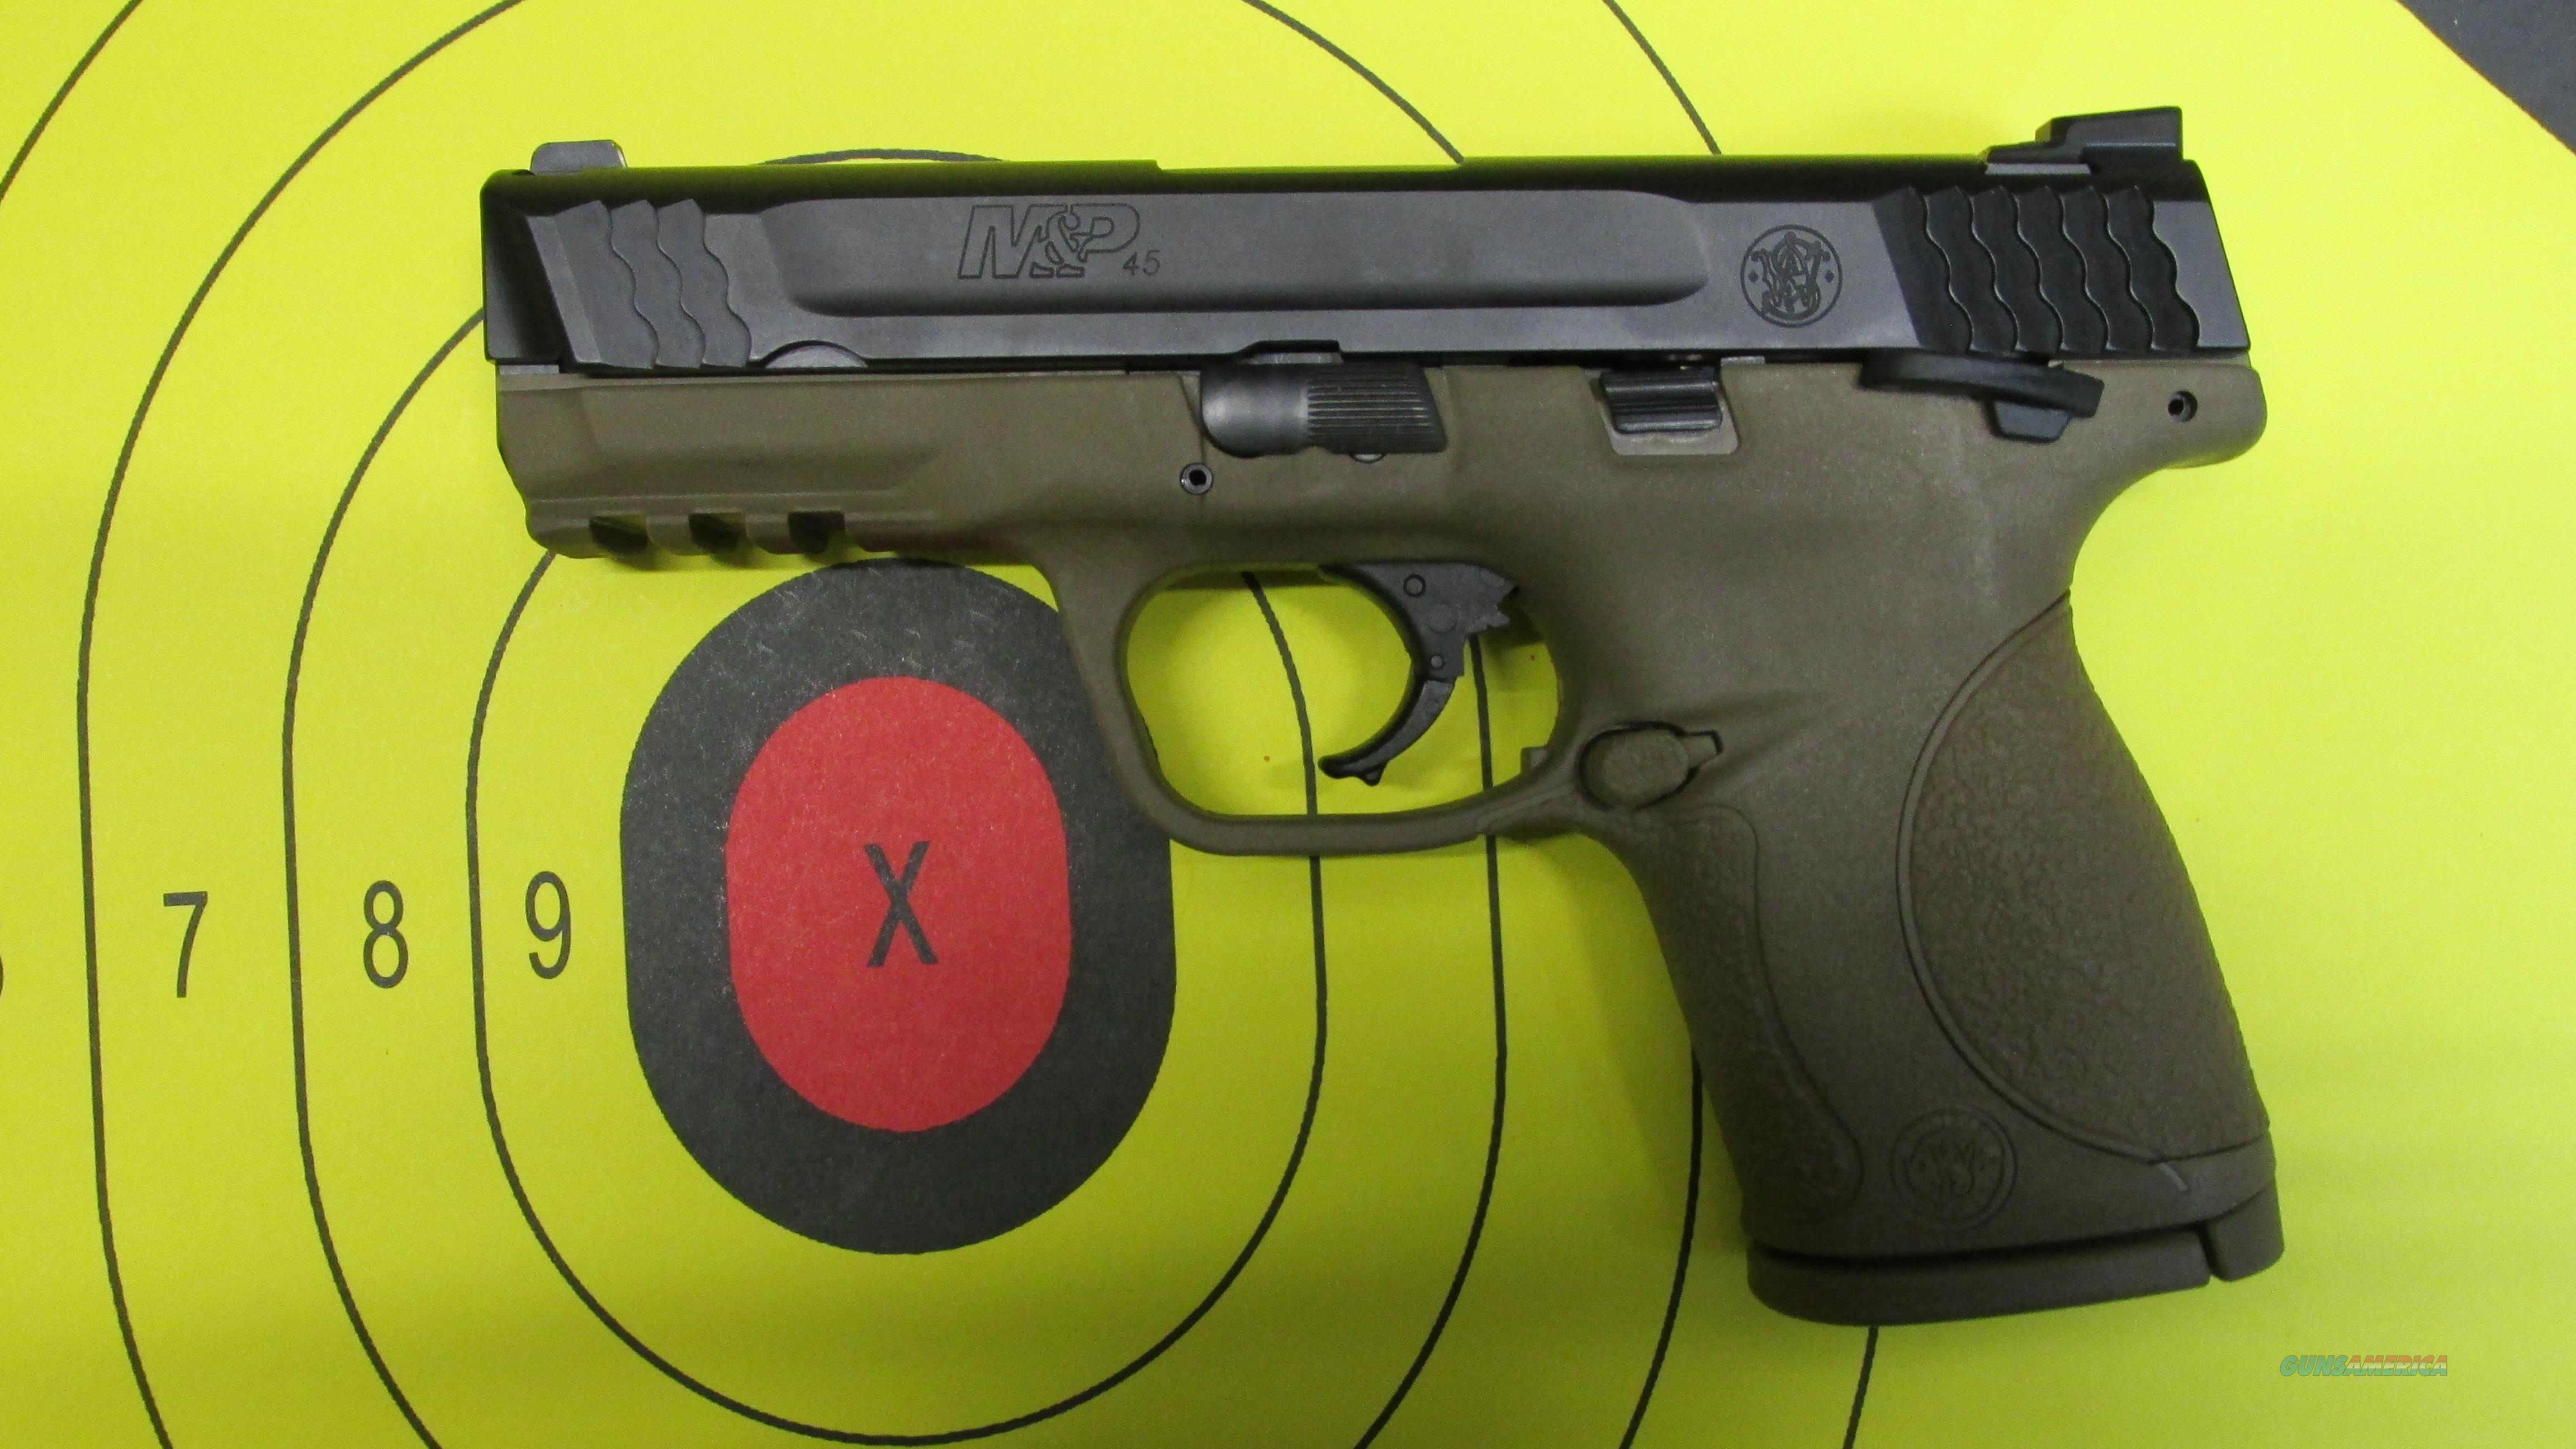 SMITH & WESSON M&P 45C FDE S&W PISTOL  Guns > Pistols > Smith & Wesson Pistols - Autos > Polymer Frame